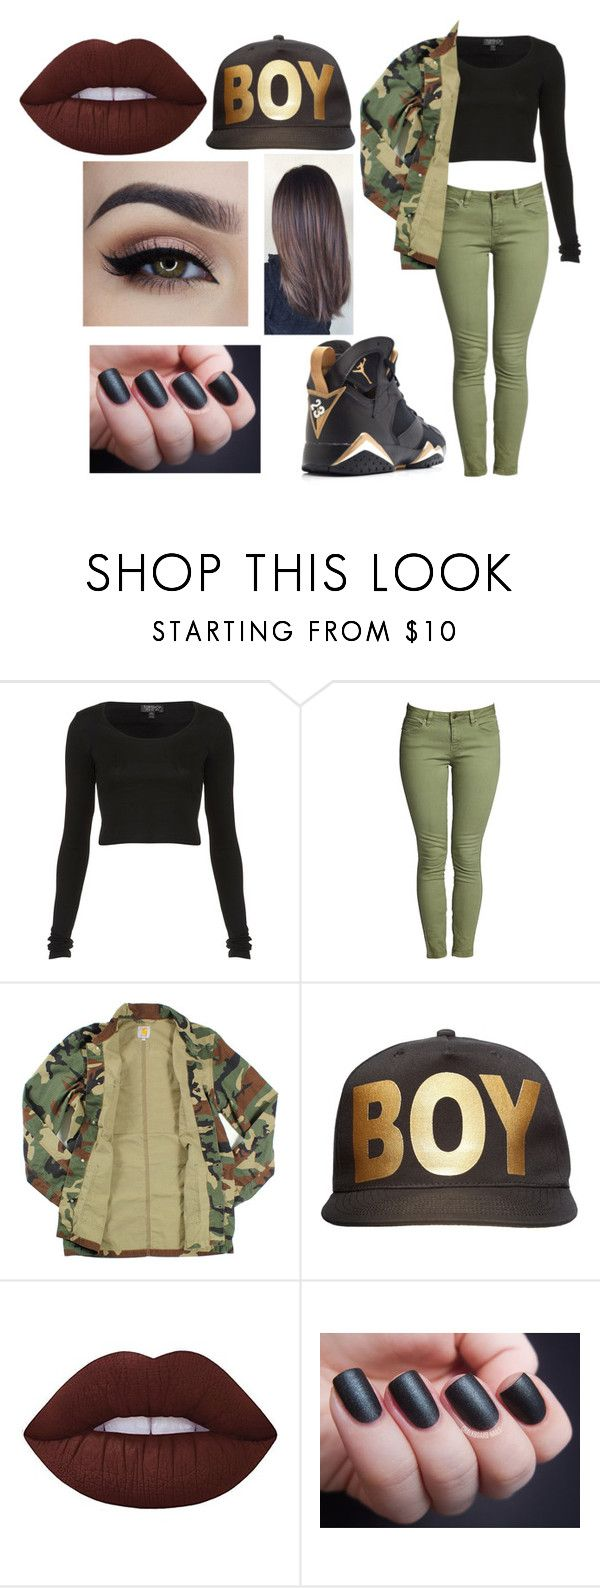 """Untitled #2348"" by hey-mate ❤ liked on Polyvore featuring Topshop, Carhartt, BOY London, Lime Crime and Life's a Beach"